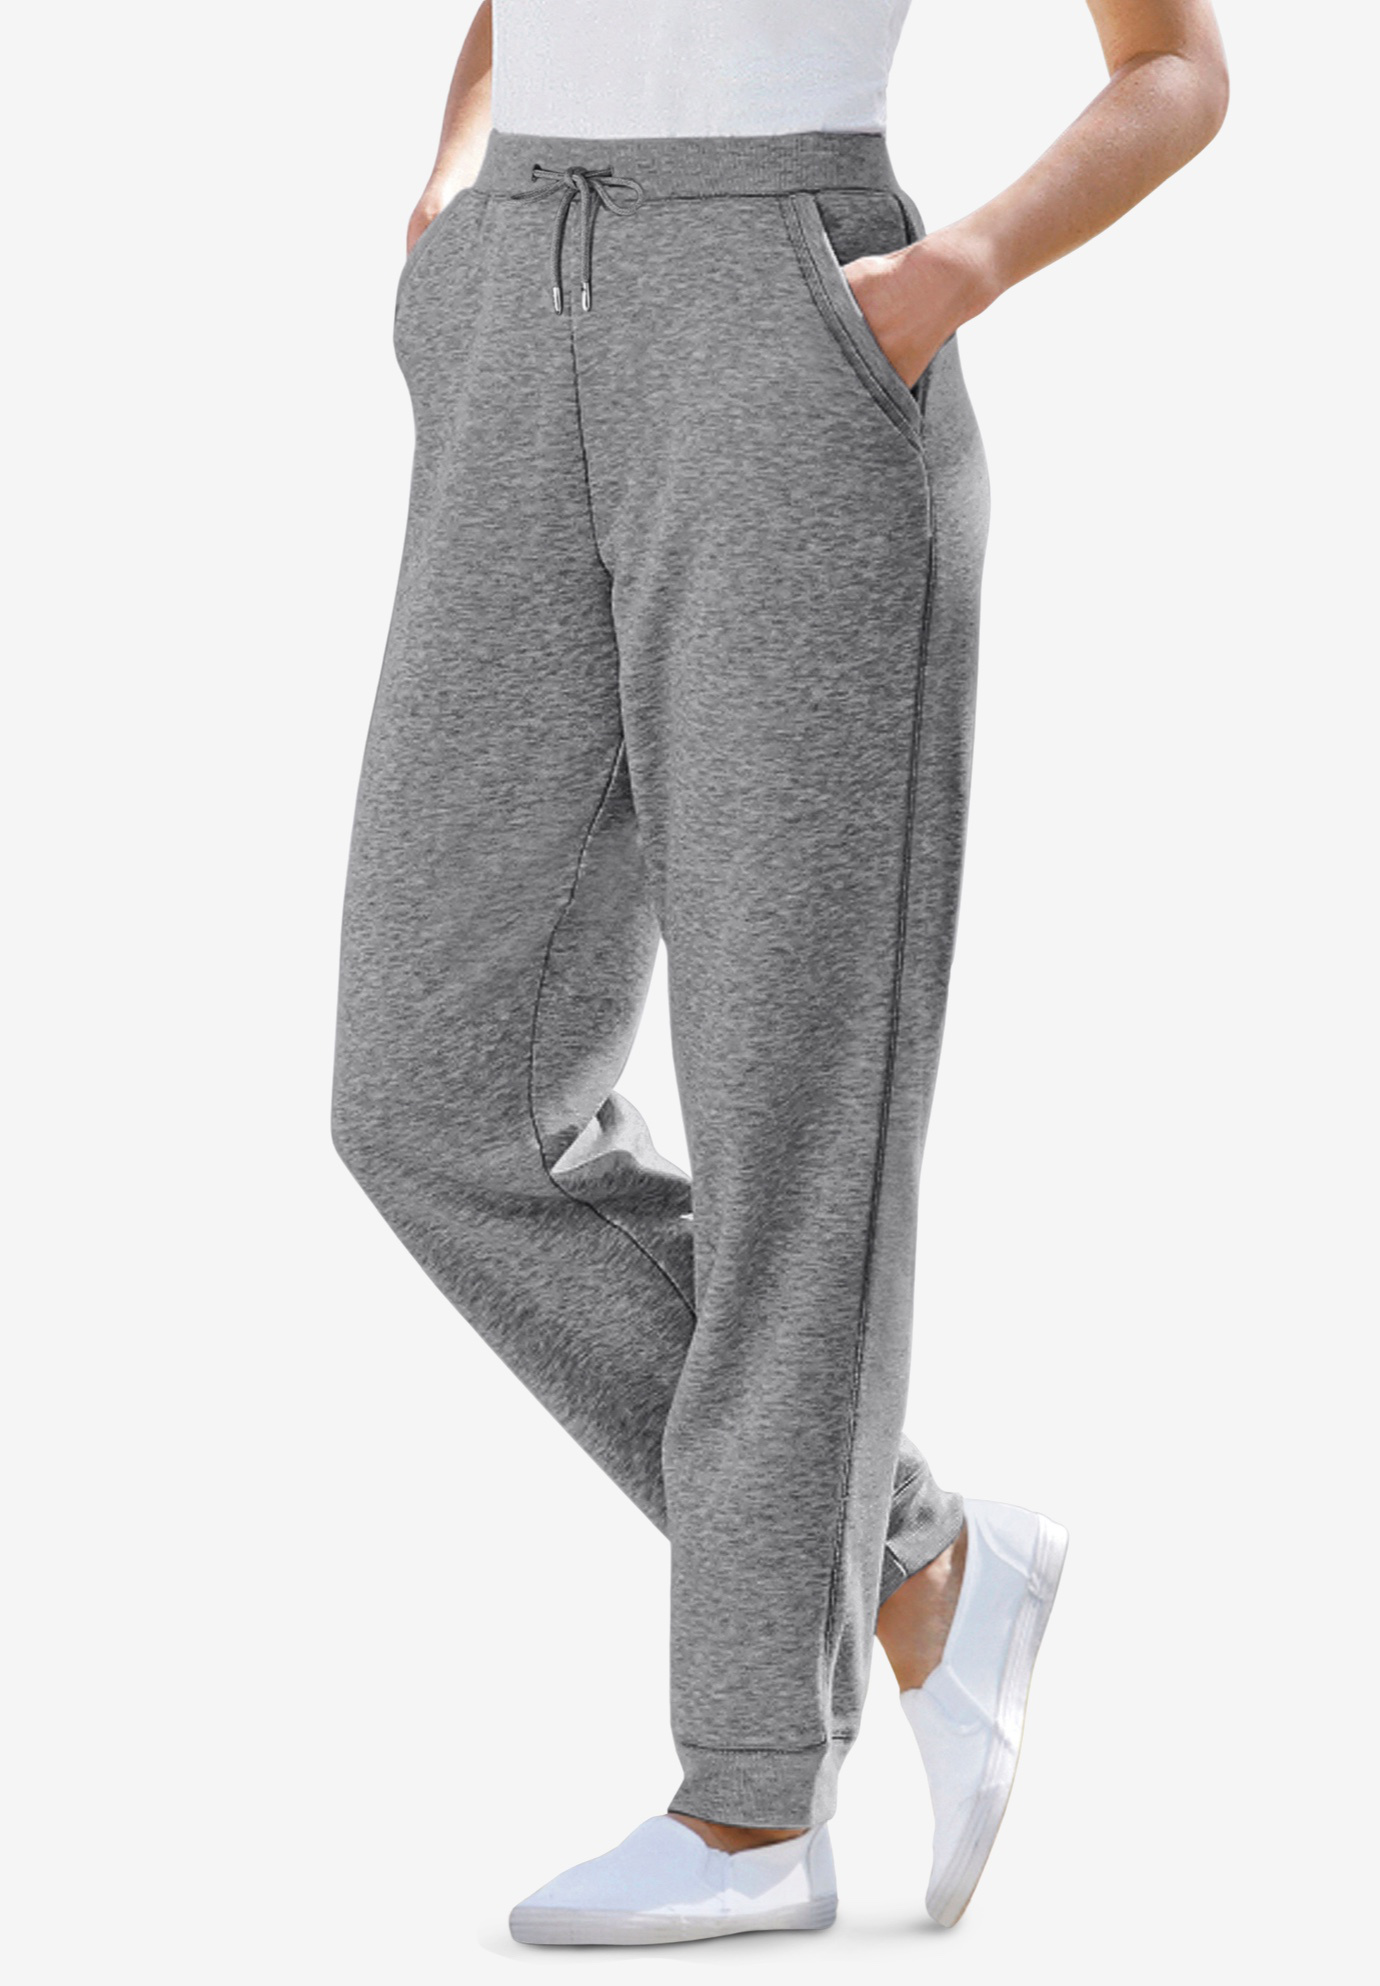 Pants, sweats with rib cuffs in fleece, MEDIUM HEATHER GREY, hi-res